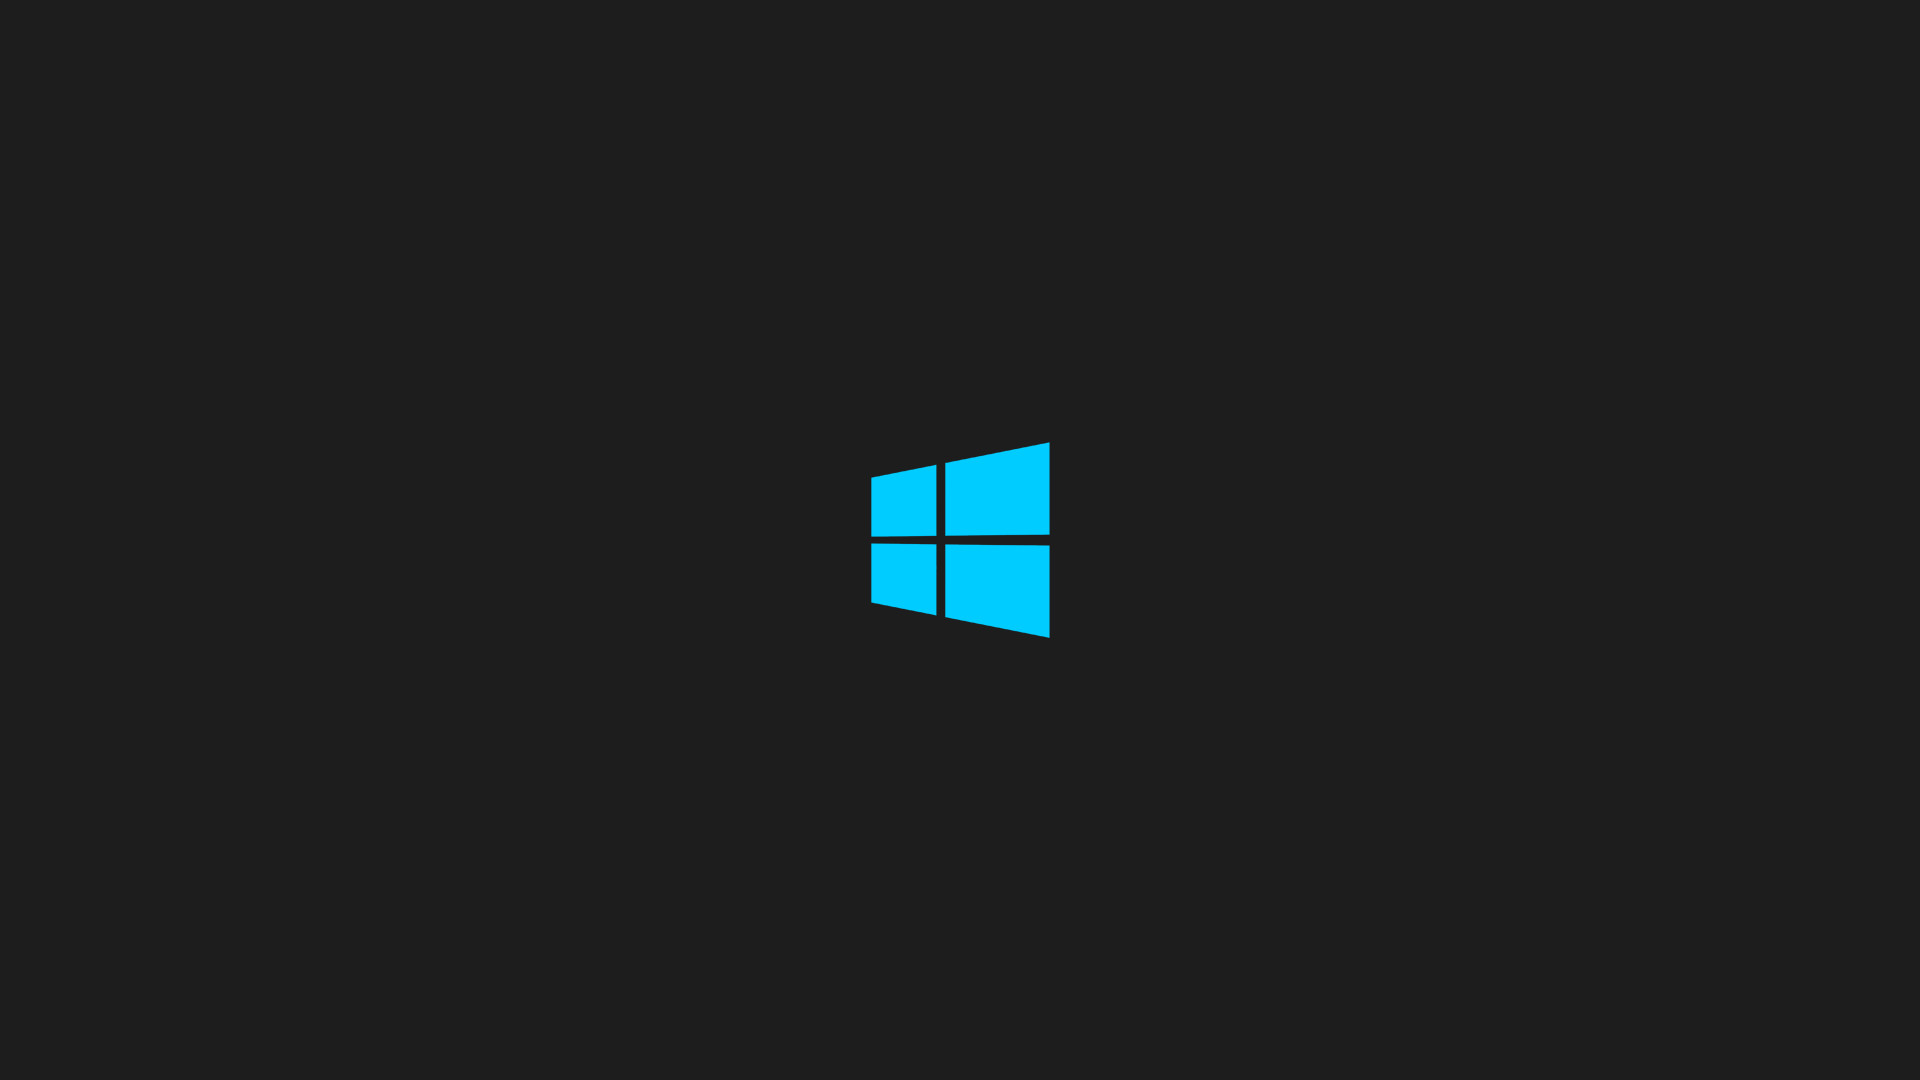 1920x1080 Technology - Windows 8 Wallpaper